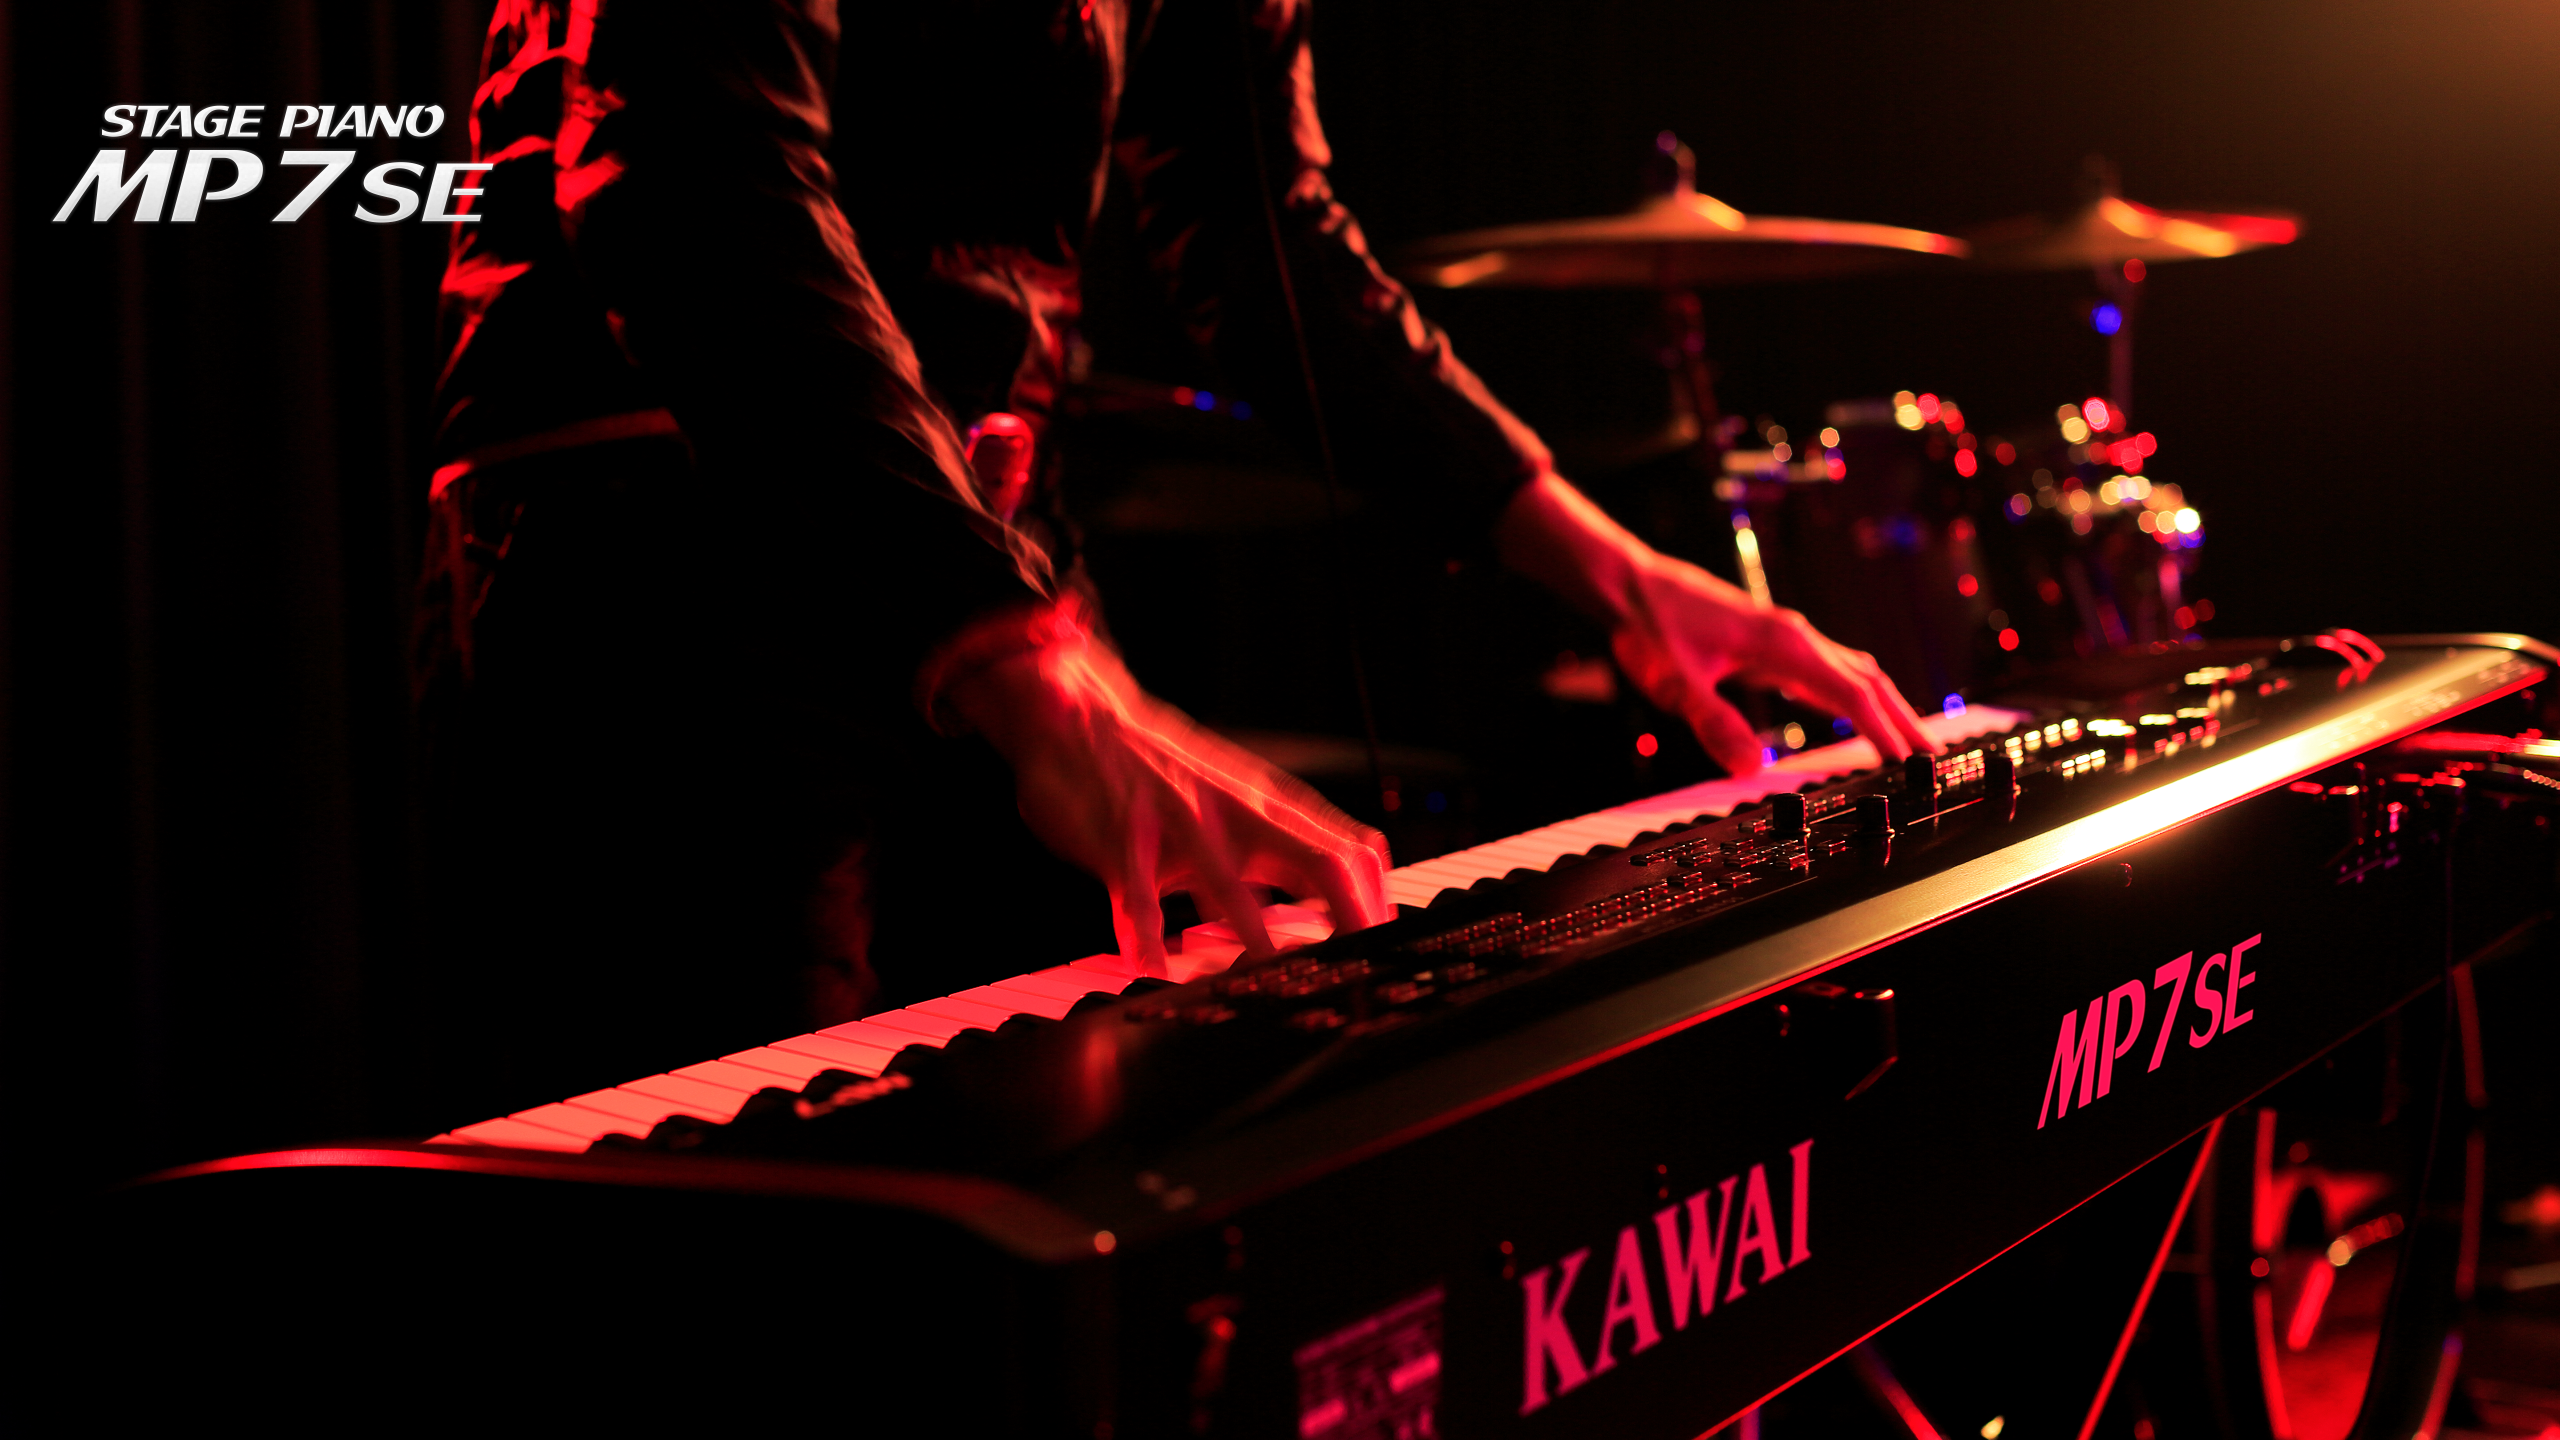 Wallpaper Media Kawai Mp Stage Pianos